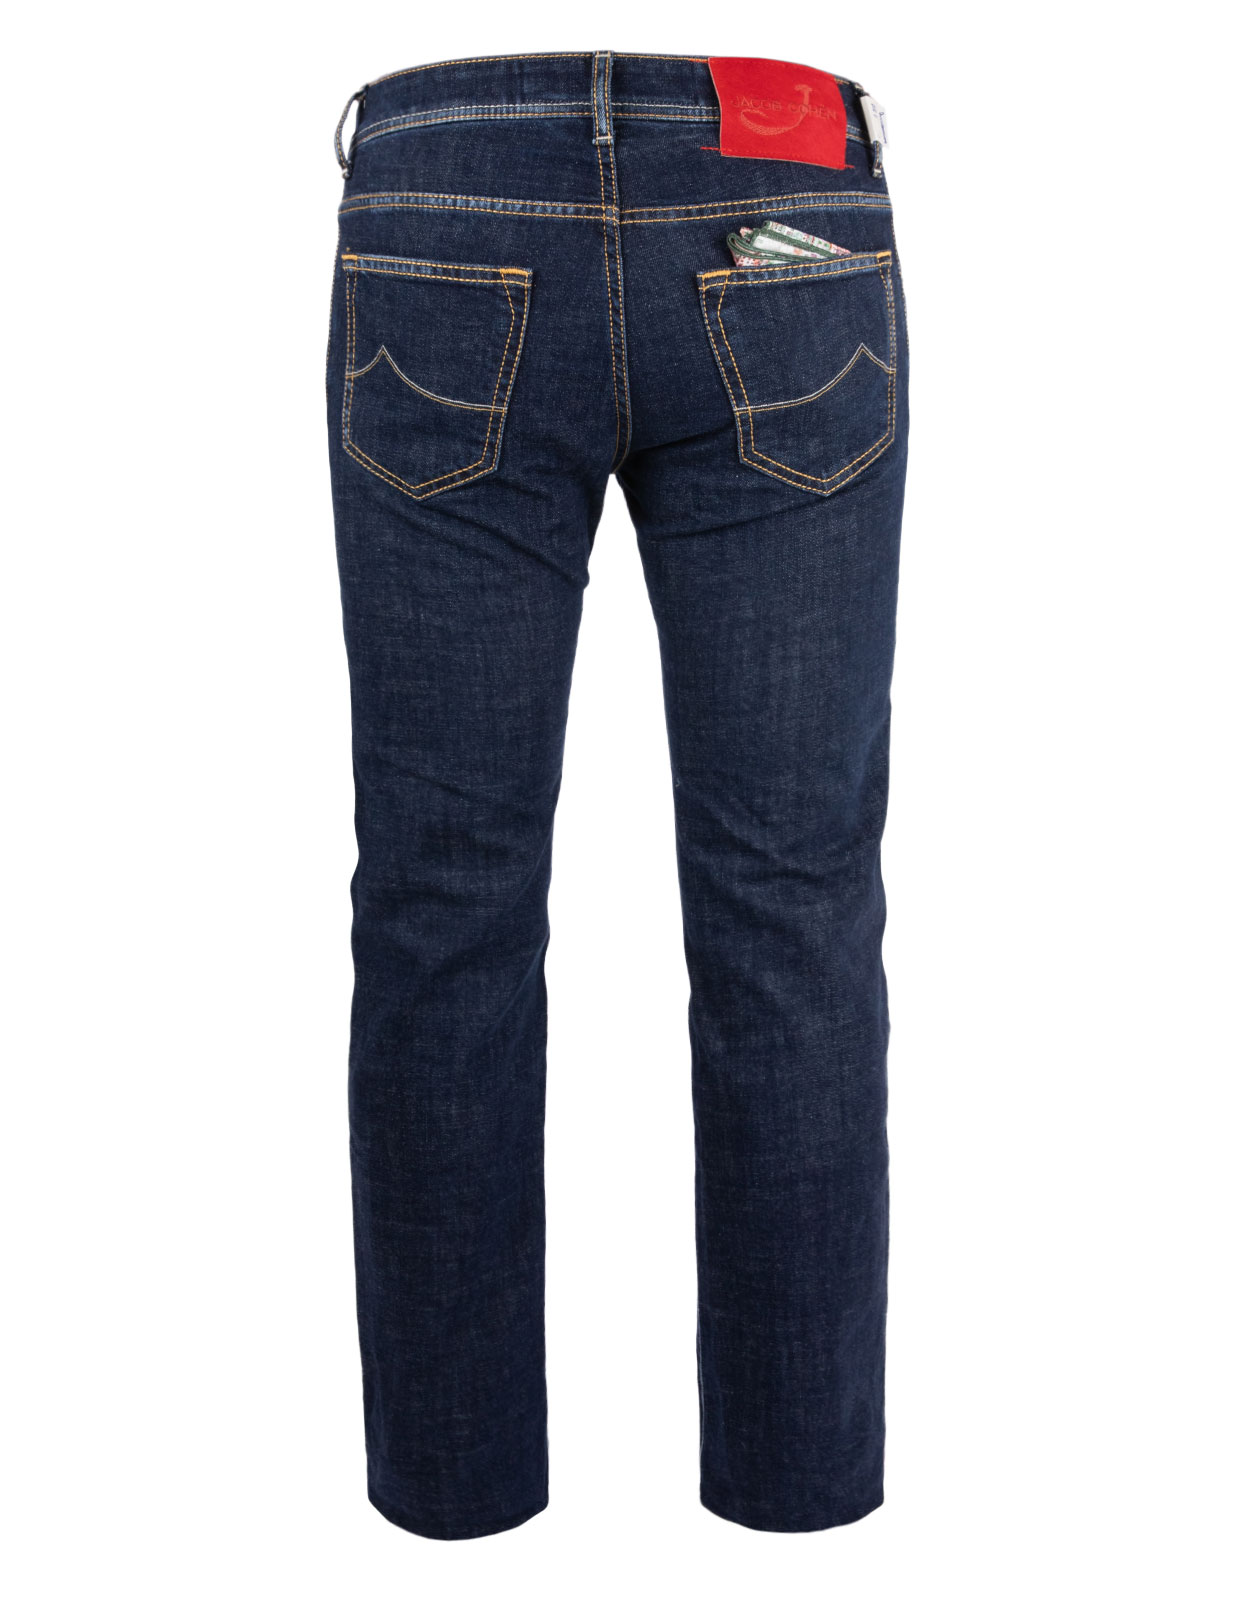 J622 Jeans 01190 Denim Stretch DarkBlue